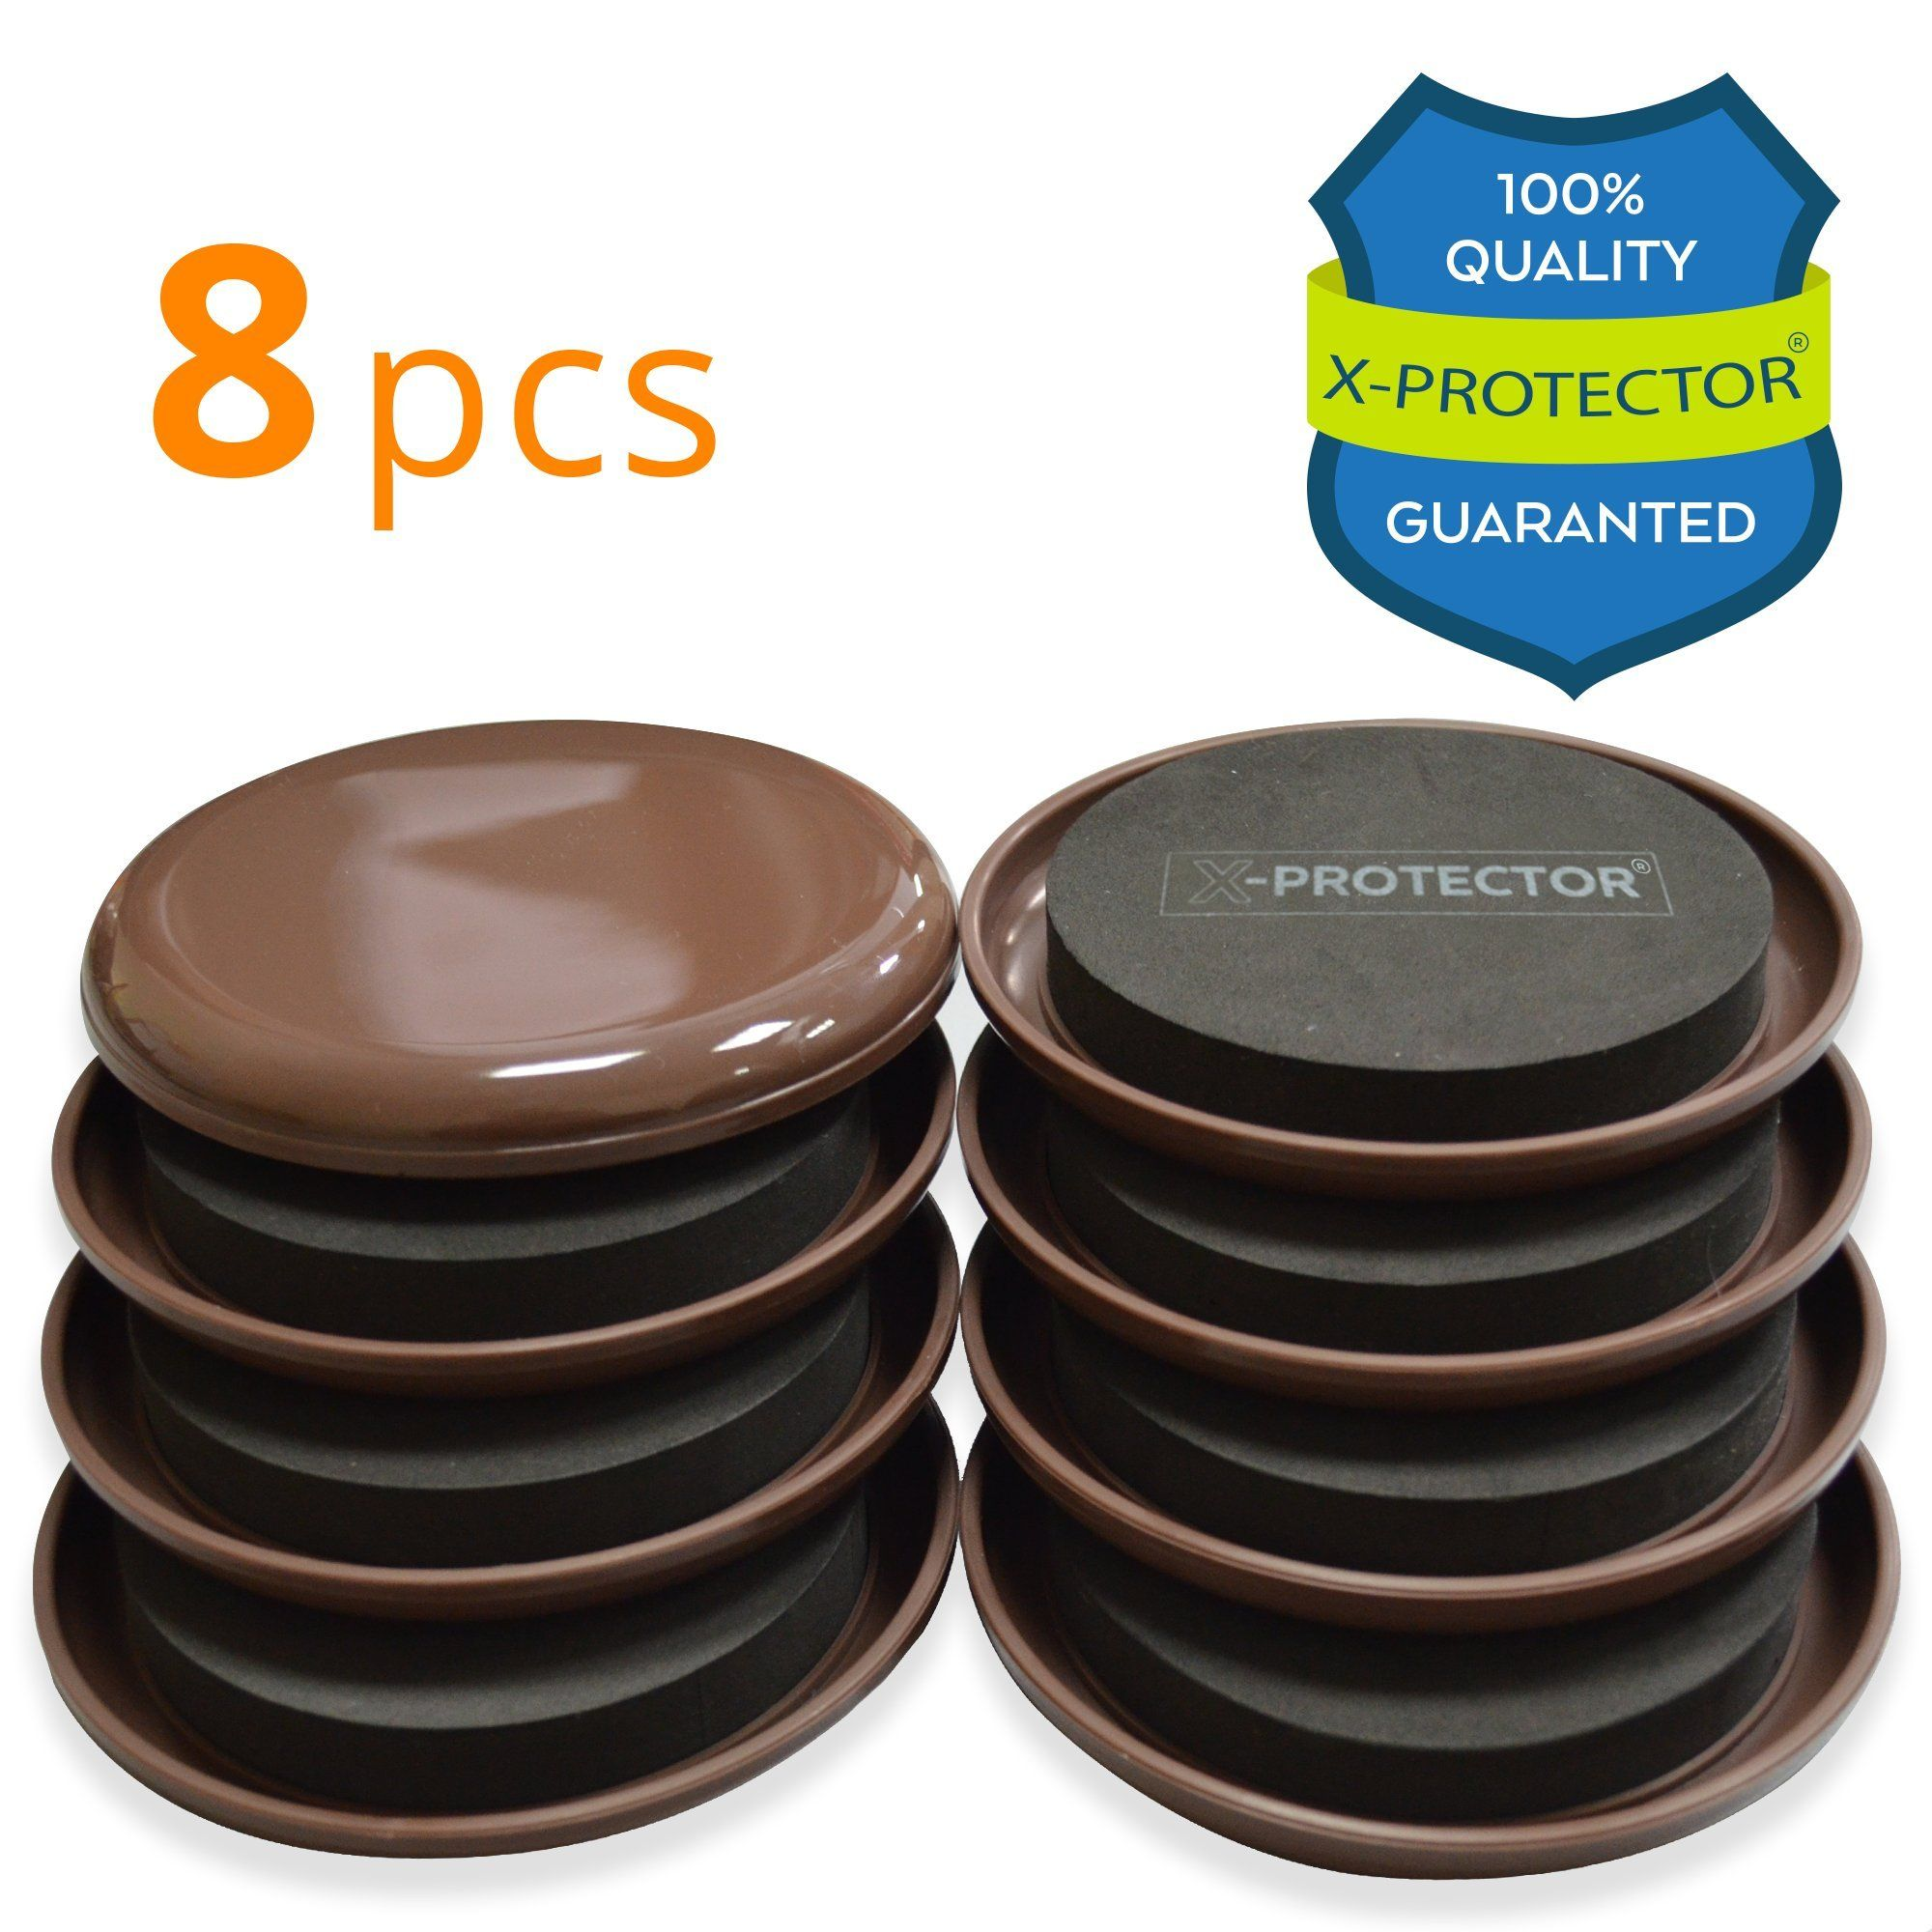 Furniture Sliders For Carpet X Protector Best 8 Pack 4 3 Inch Heavy Moving Pads Move Your Easy With Reusable